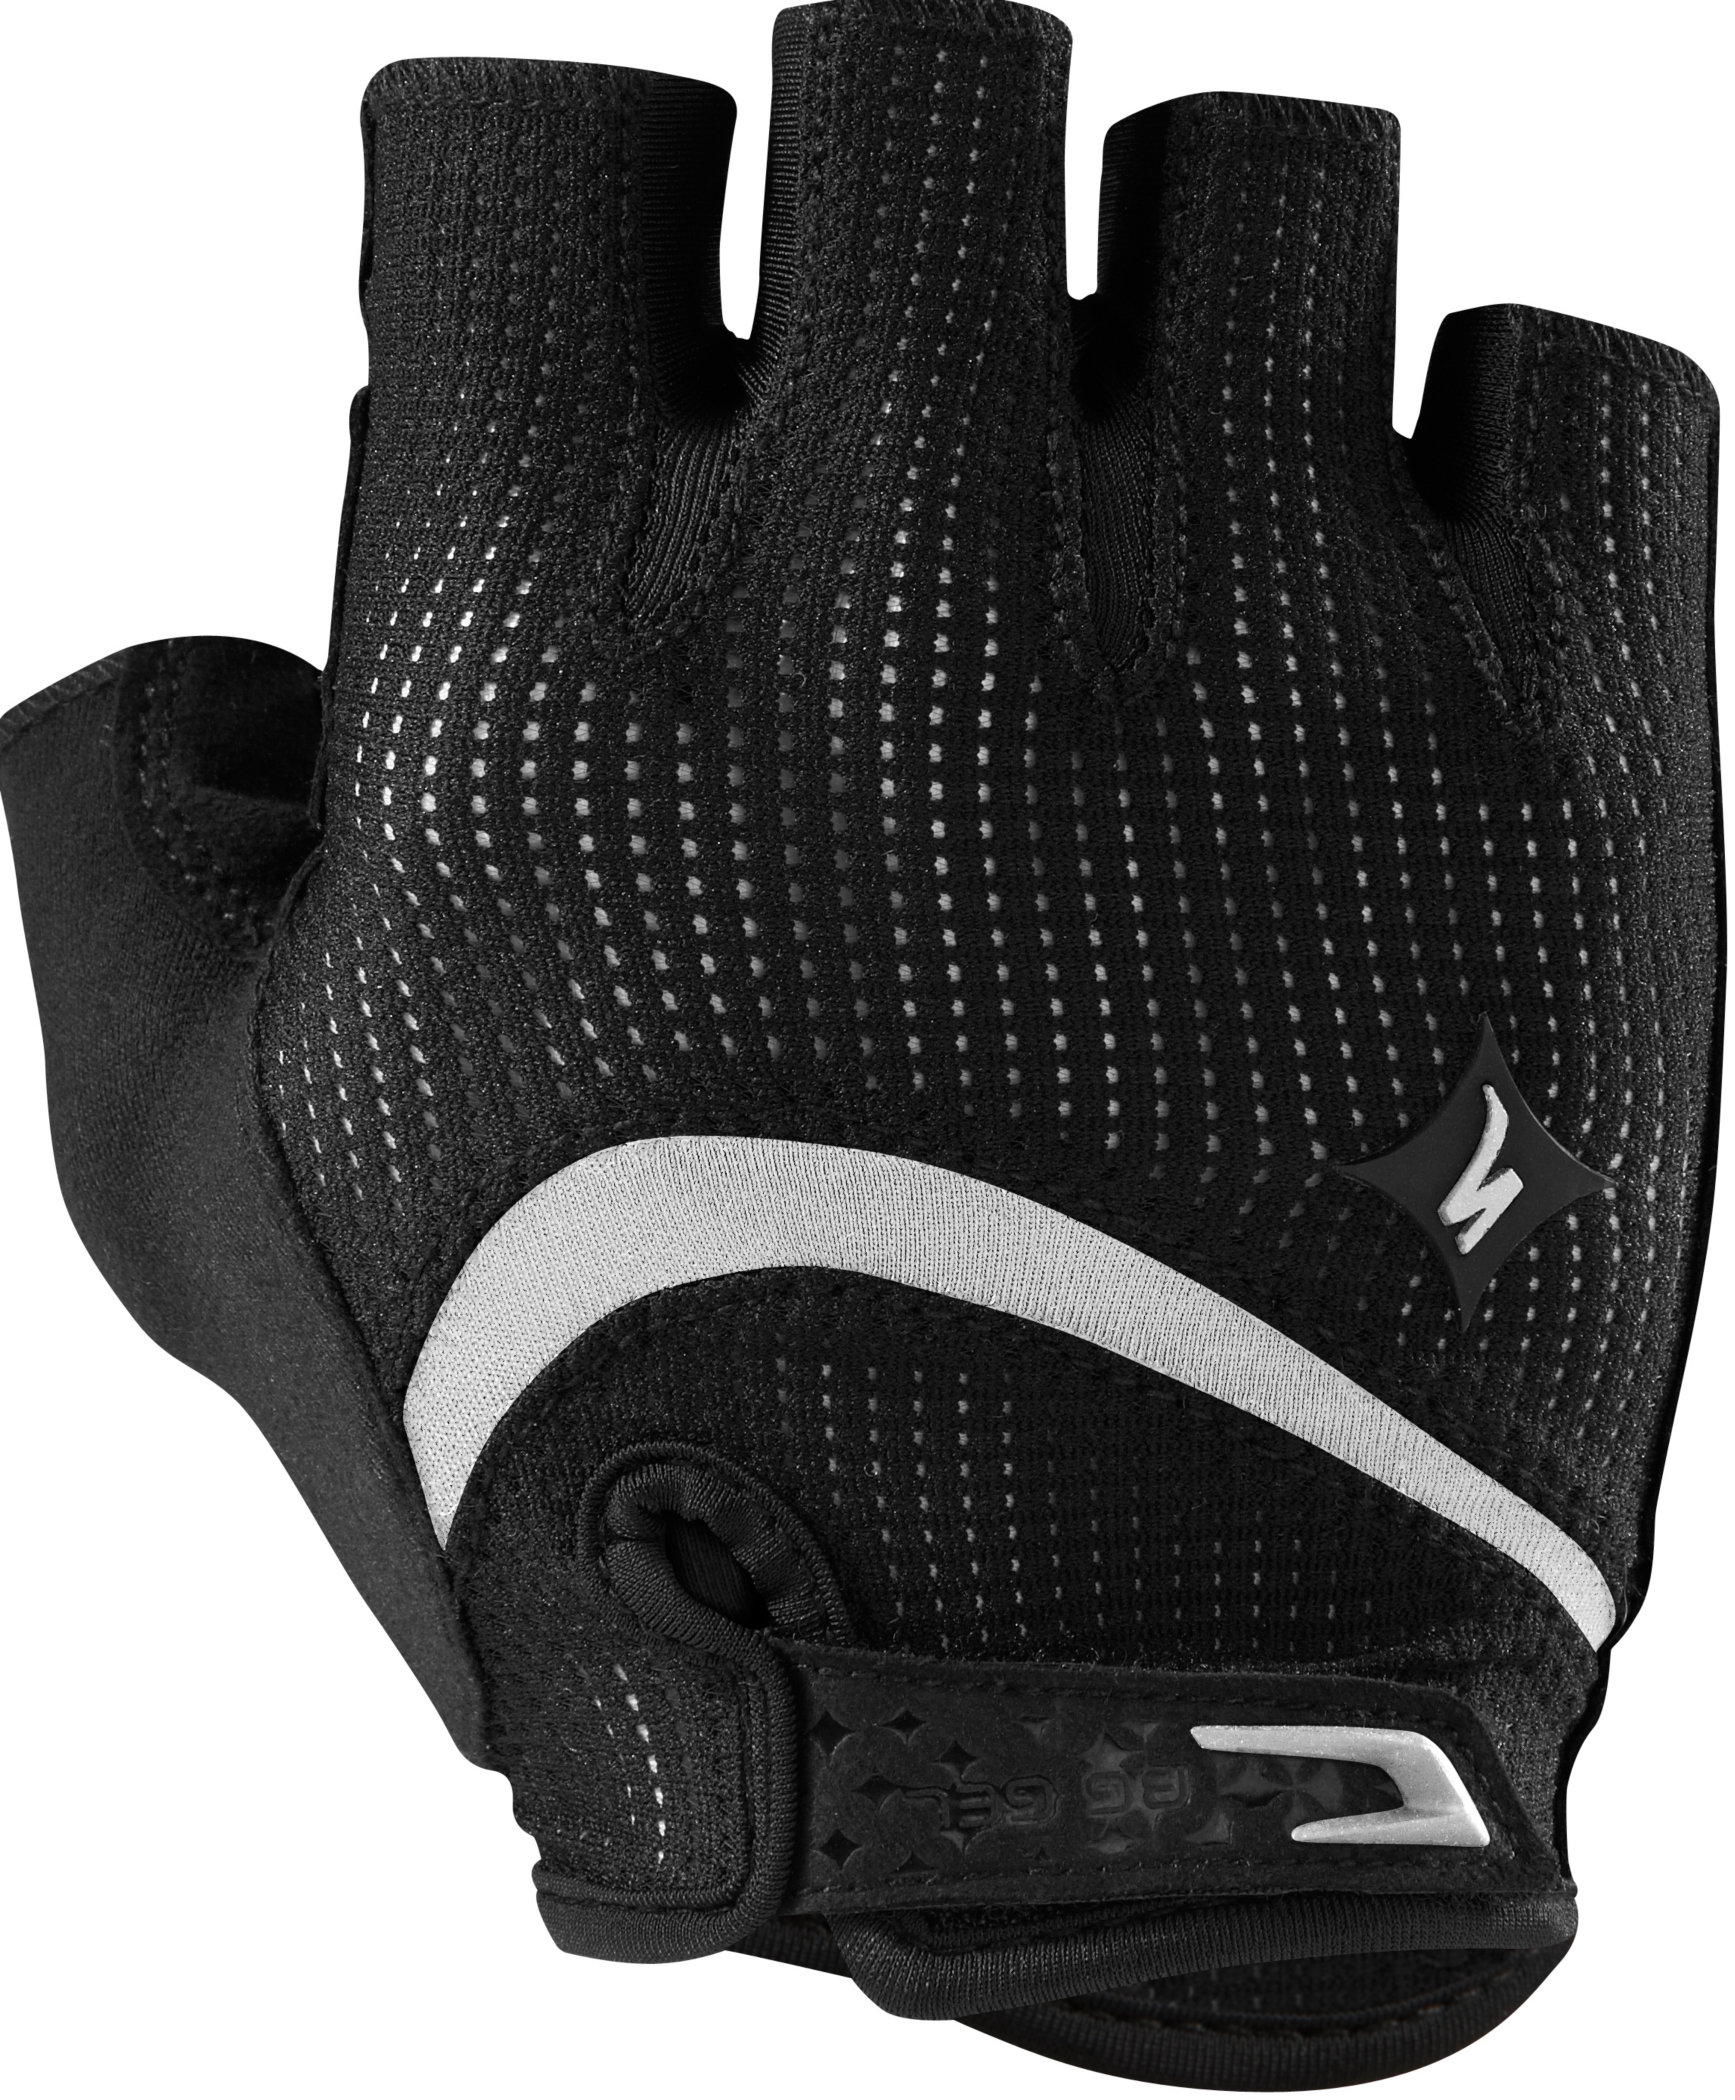 SPECIALIZED BG GEL GLOVE SF WMN BLK/BLK S - Bikedreams & Dustbikes